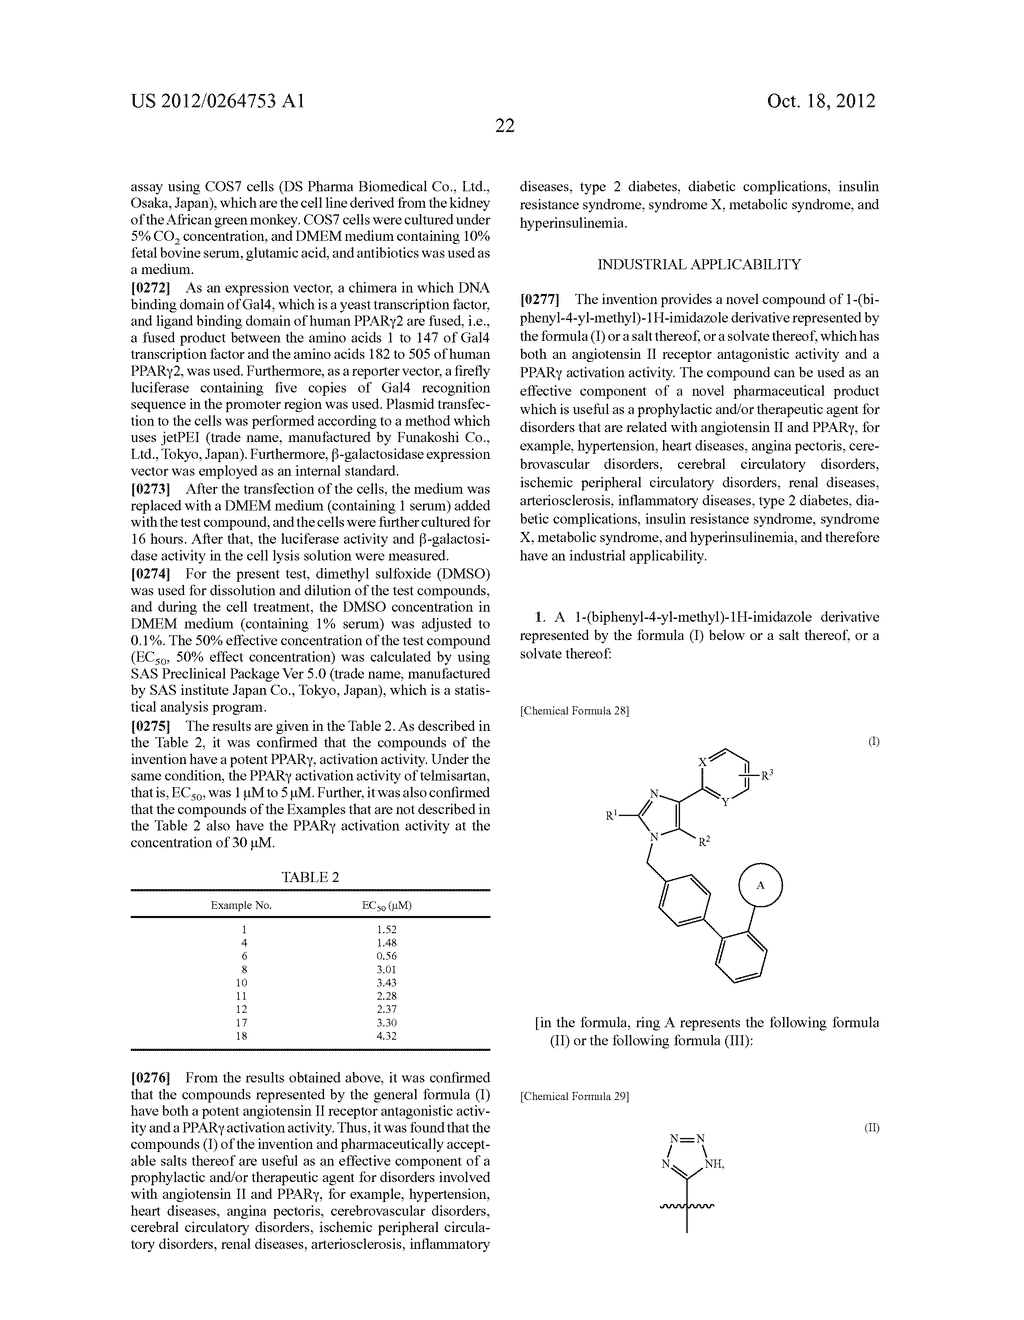 NOVEL 1-(BIPHENYL-4-YL-METHYL)-1H-IMIDAZOLE DERIVATIVE AND PHARMACEUTICAL     PRODUCT CONTAINING SAME - diagram, schematic, and image 23